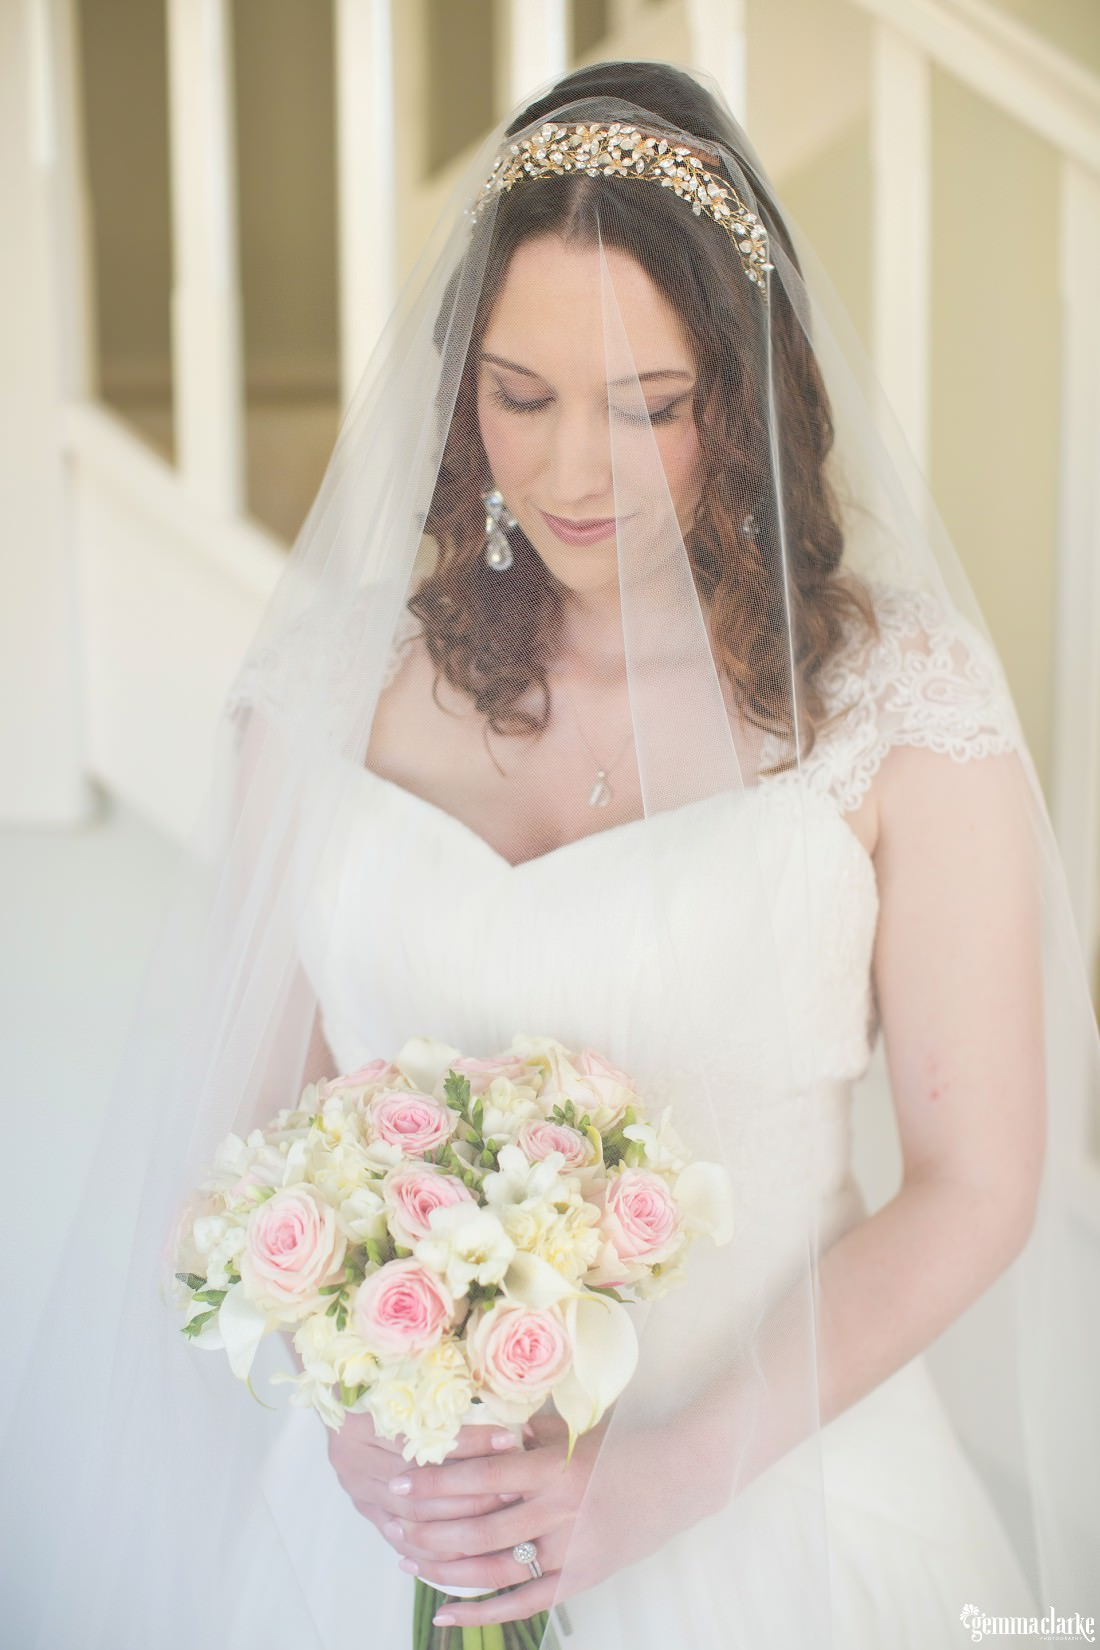 gemmaclarkephotography_exeter-wedding_sylvan-glen-wedding_celeste-and-deane_0013